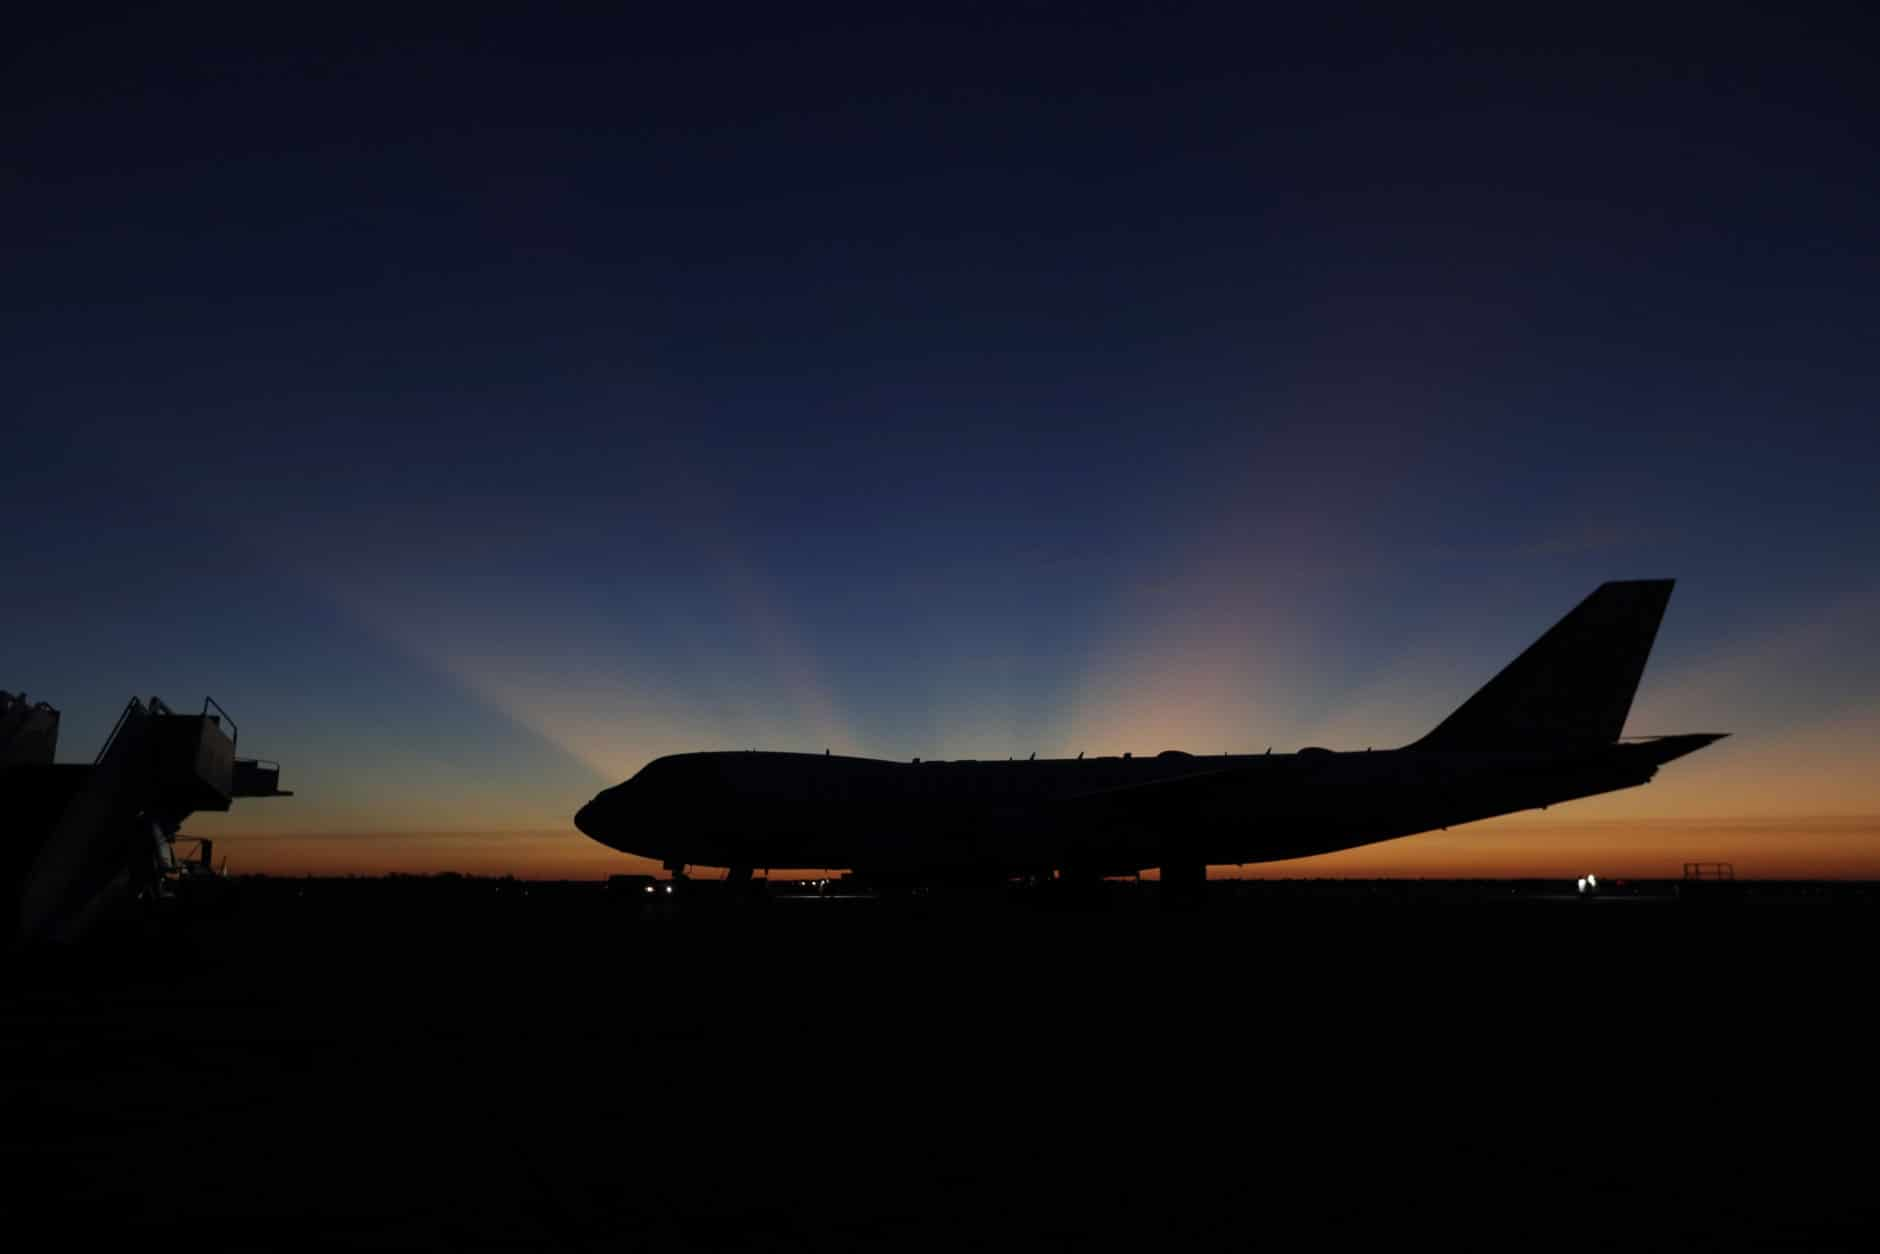 The sun rises behind Special Air Mission 41, the plane that will transfer the casket of former President George H.W. Bush to Washington,D.C., Monday, Dec. 3, 2018, in Houston. Bush, died late Friday at his Houston home at age 94, is to be honored with a state funeral at National Cathedral in the nation's capital on Wednesday, followed by burial Thursday on the grounds of his presidential library at Texas A&M. (AP Photo/Eric Gay)